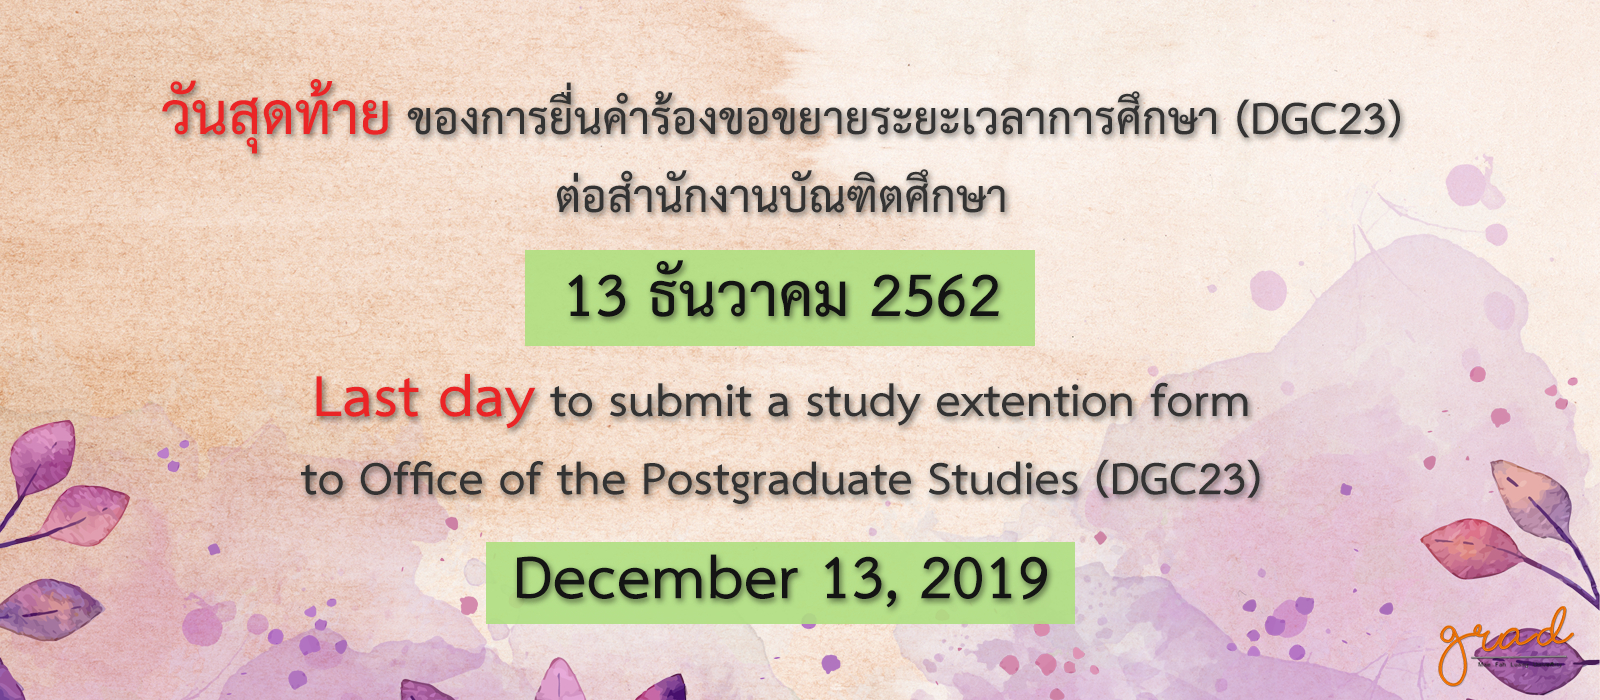 Last day to submit a study extention form 1/2019